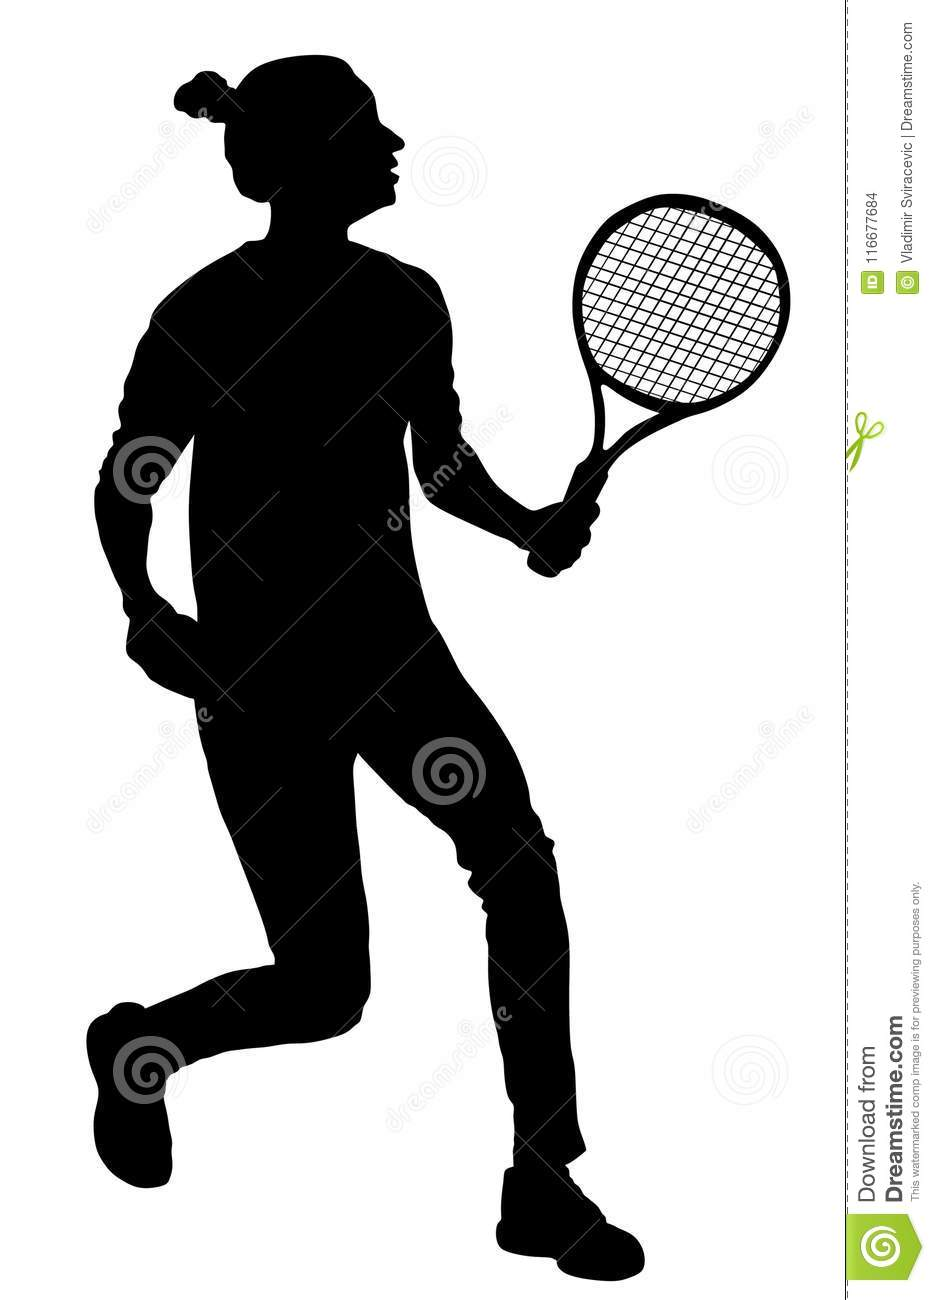 Woman Tennis Player Silhouette  Girl Play Tennis  Active